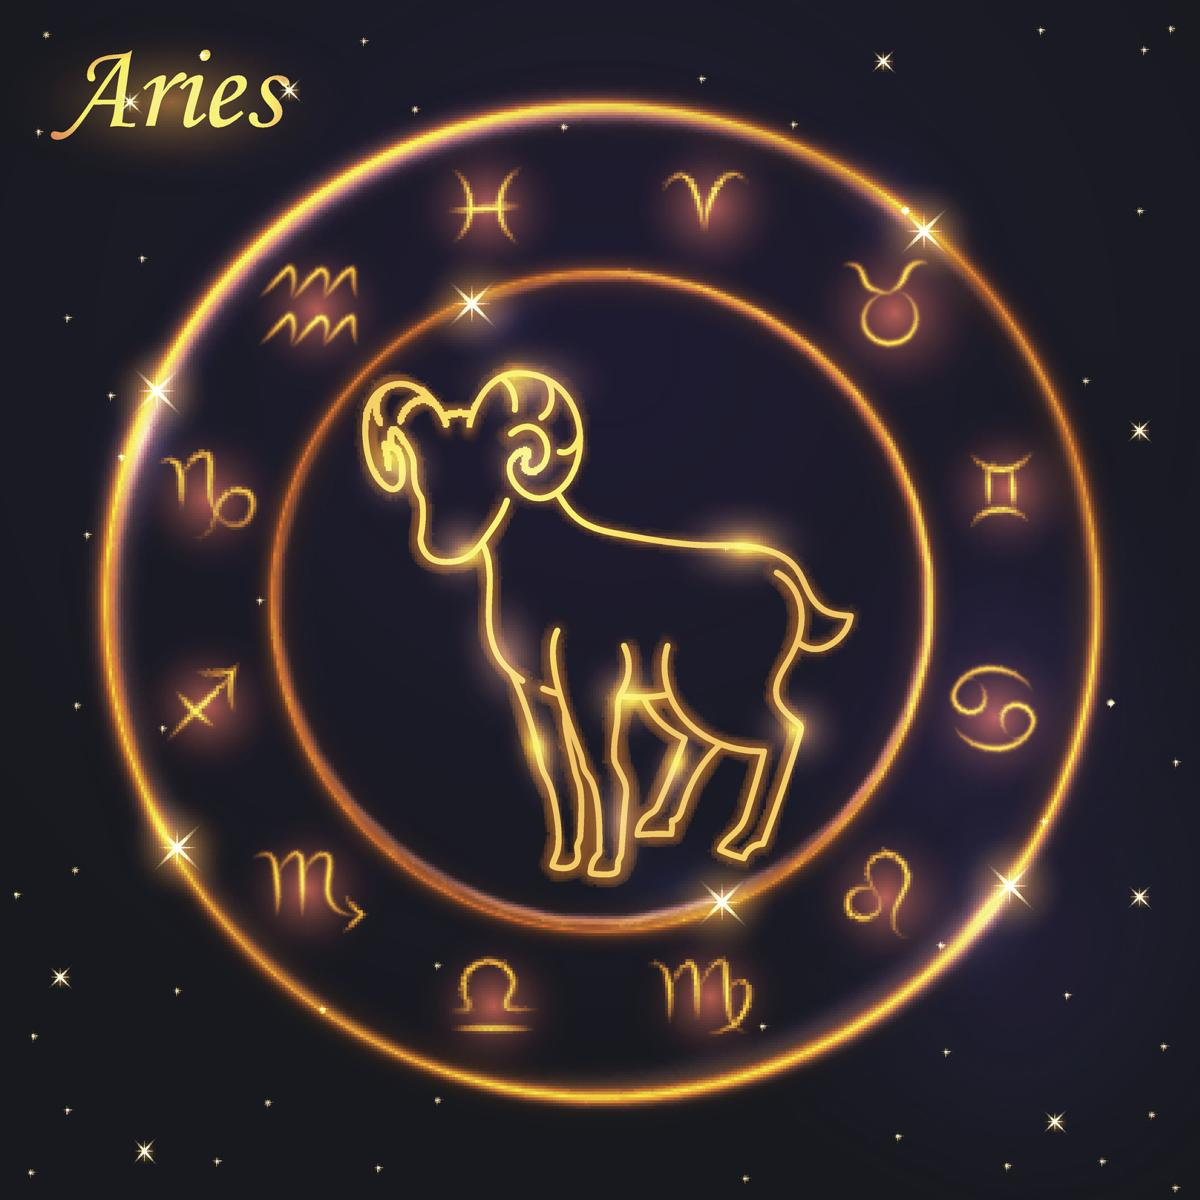 1200 637104882 aries sign 1